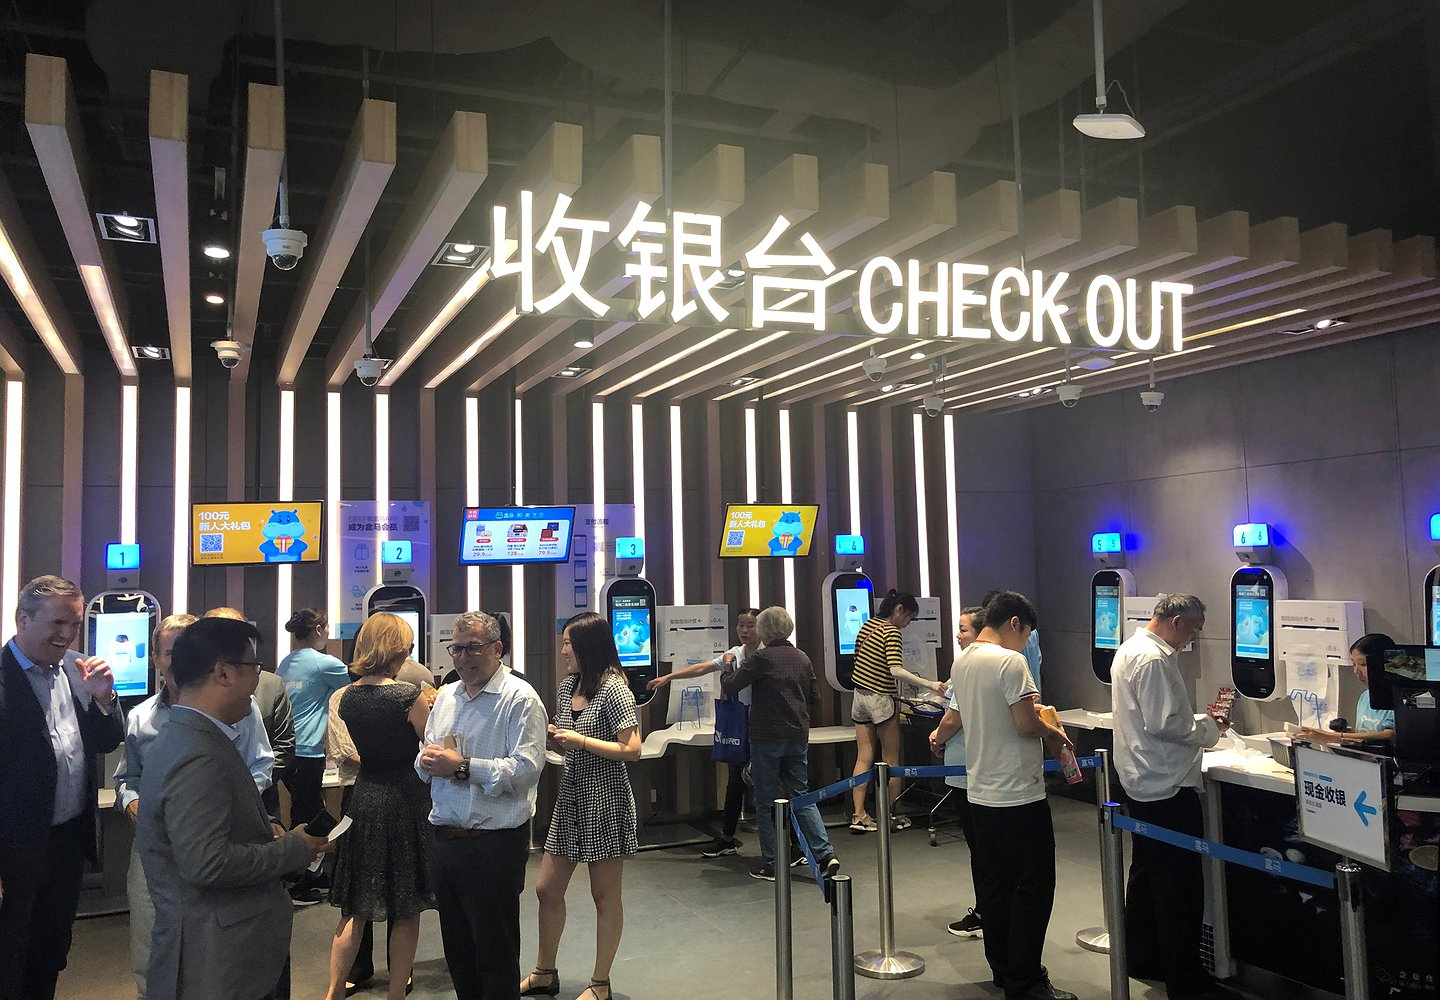 New Retail Is Coming: Insights From Havas Media North America's Thought Leadership Trip to China